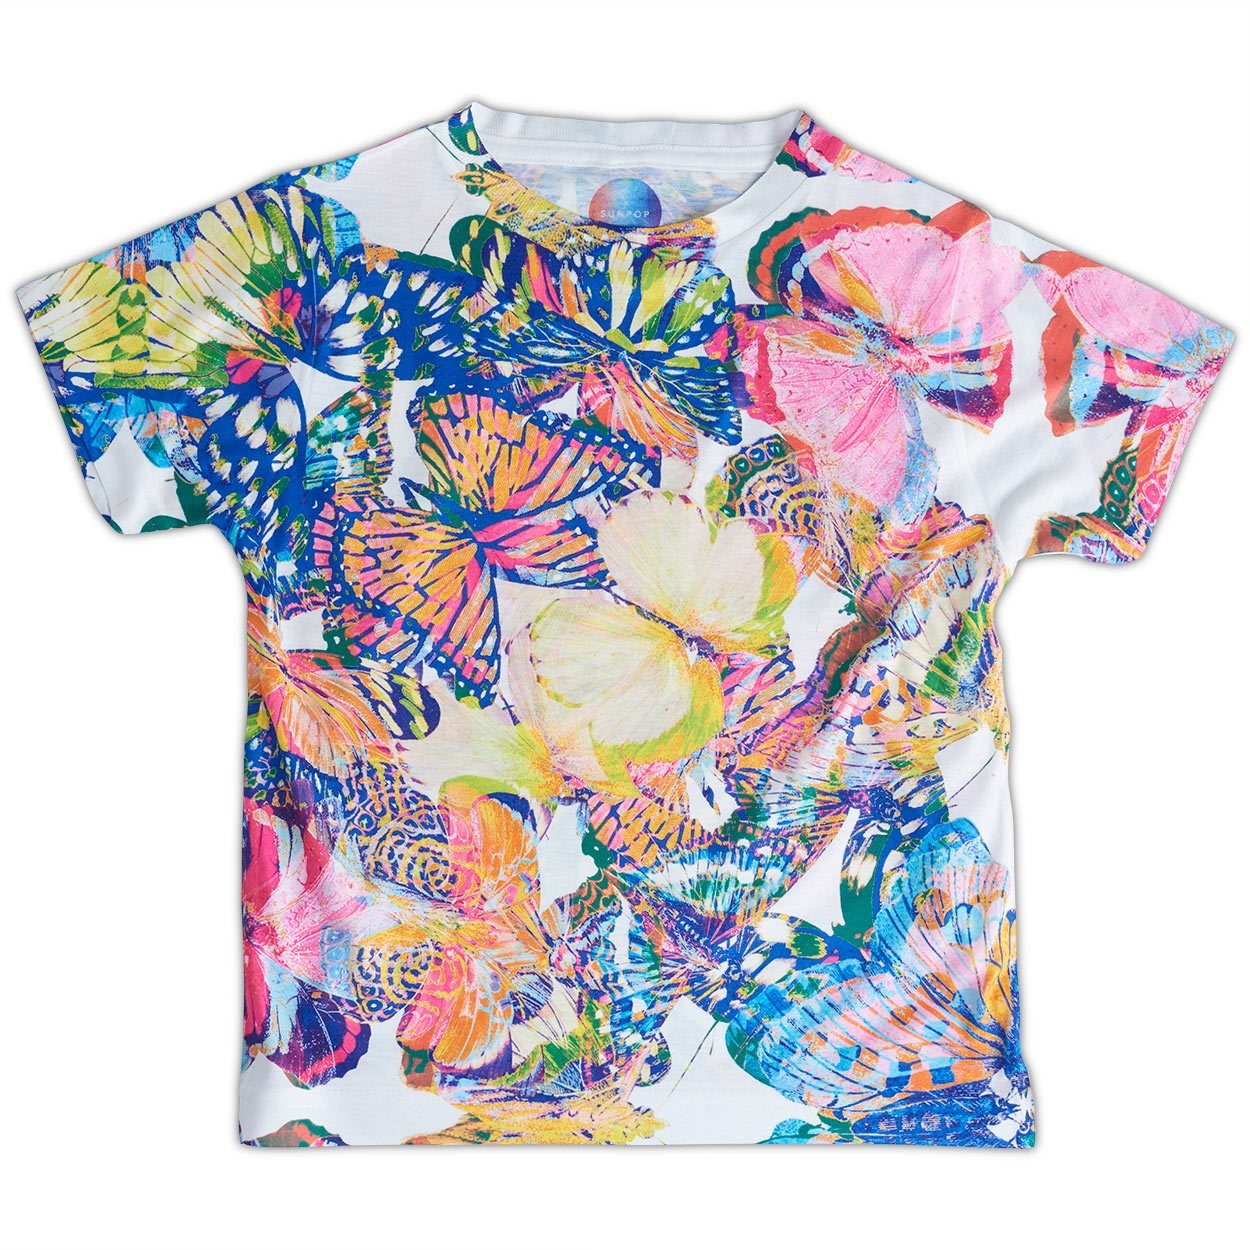 Girls Kaleidoscope Graphic T-shirt